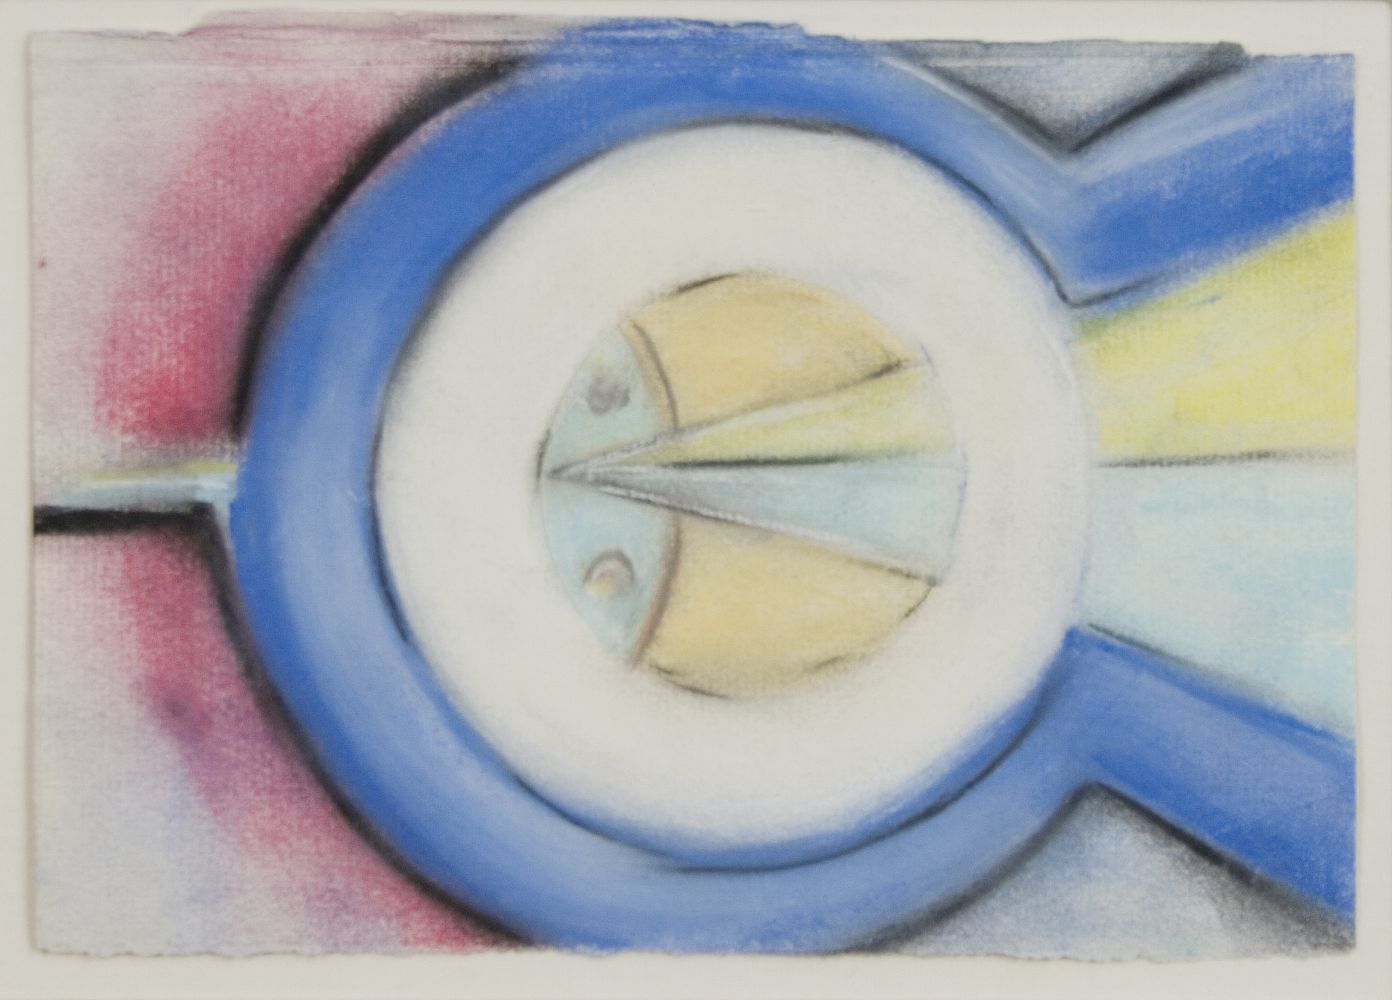 Morton Livingston Schamberg, Machine Composition, c. 1915-16, pastel and pencil on paper, 5 1/2 x 8 inches